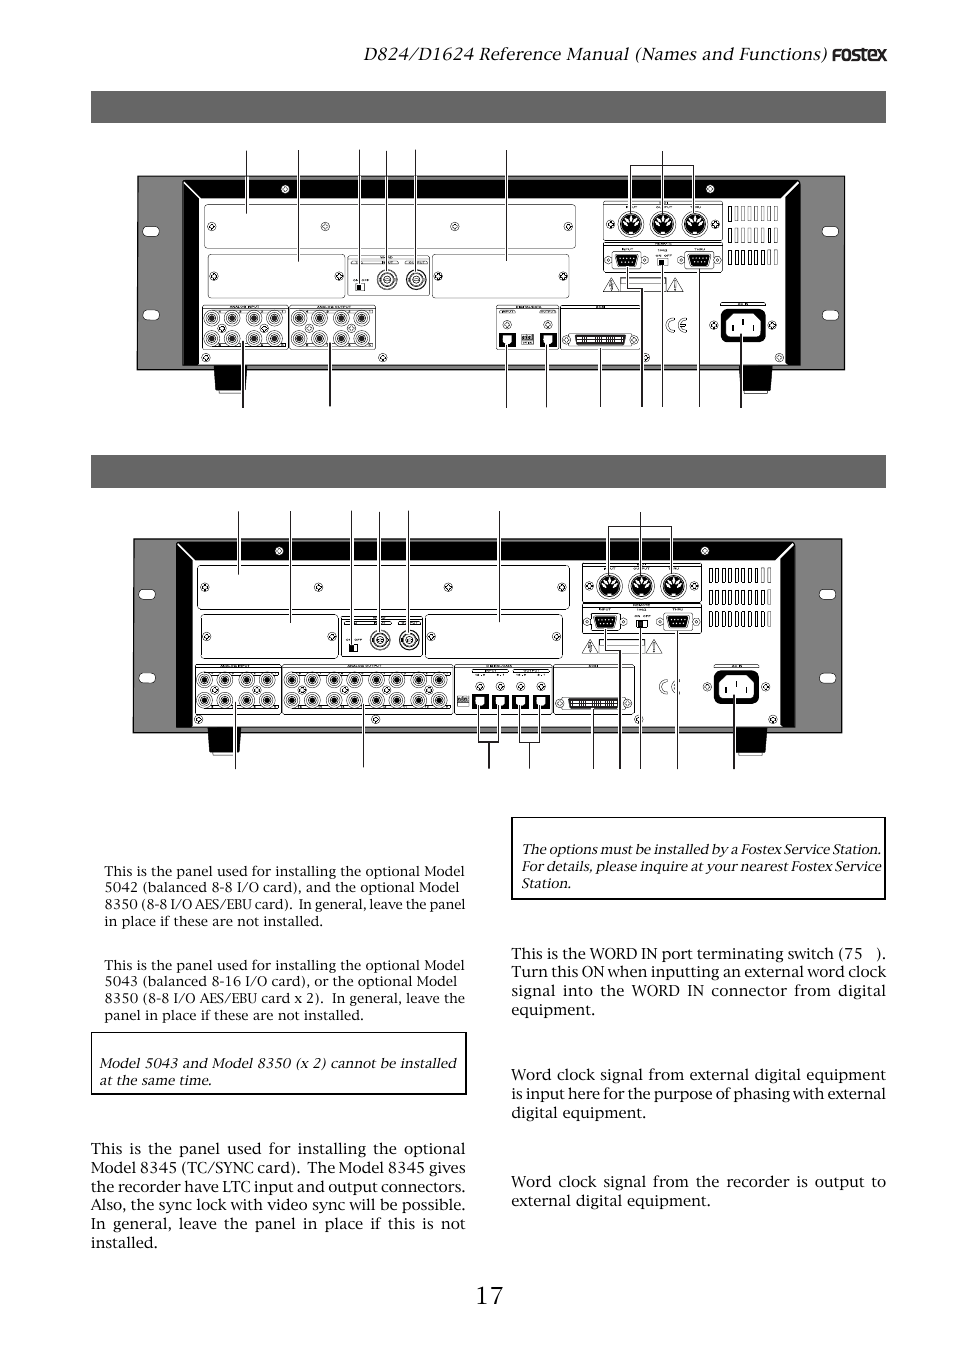 Rear panel section | Fostex D1624 User Manual | Page 17 / 136